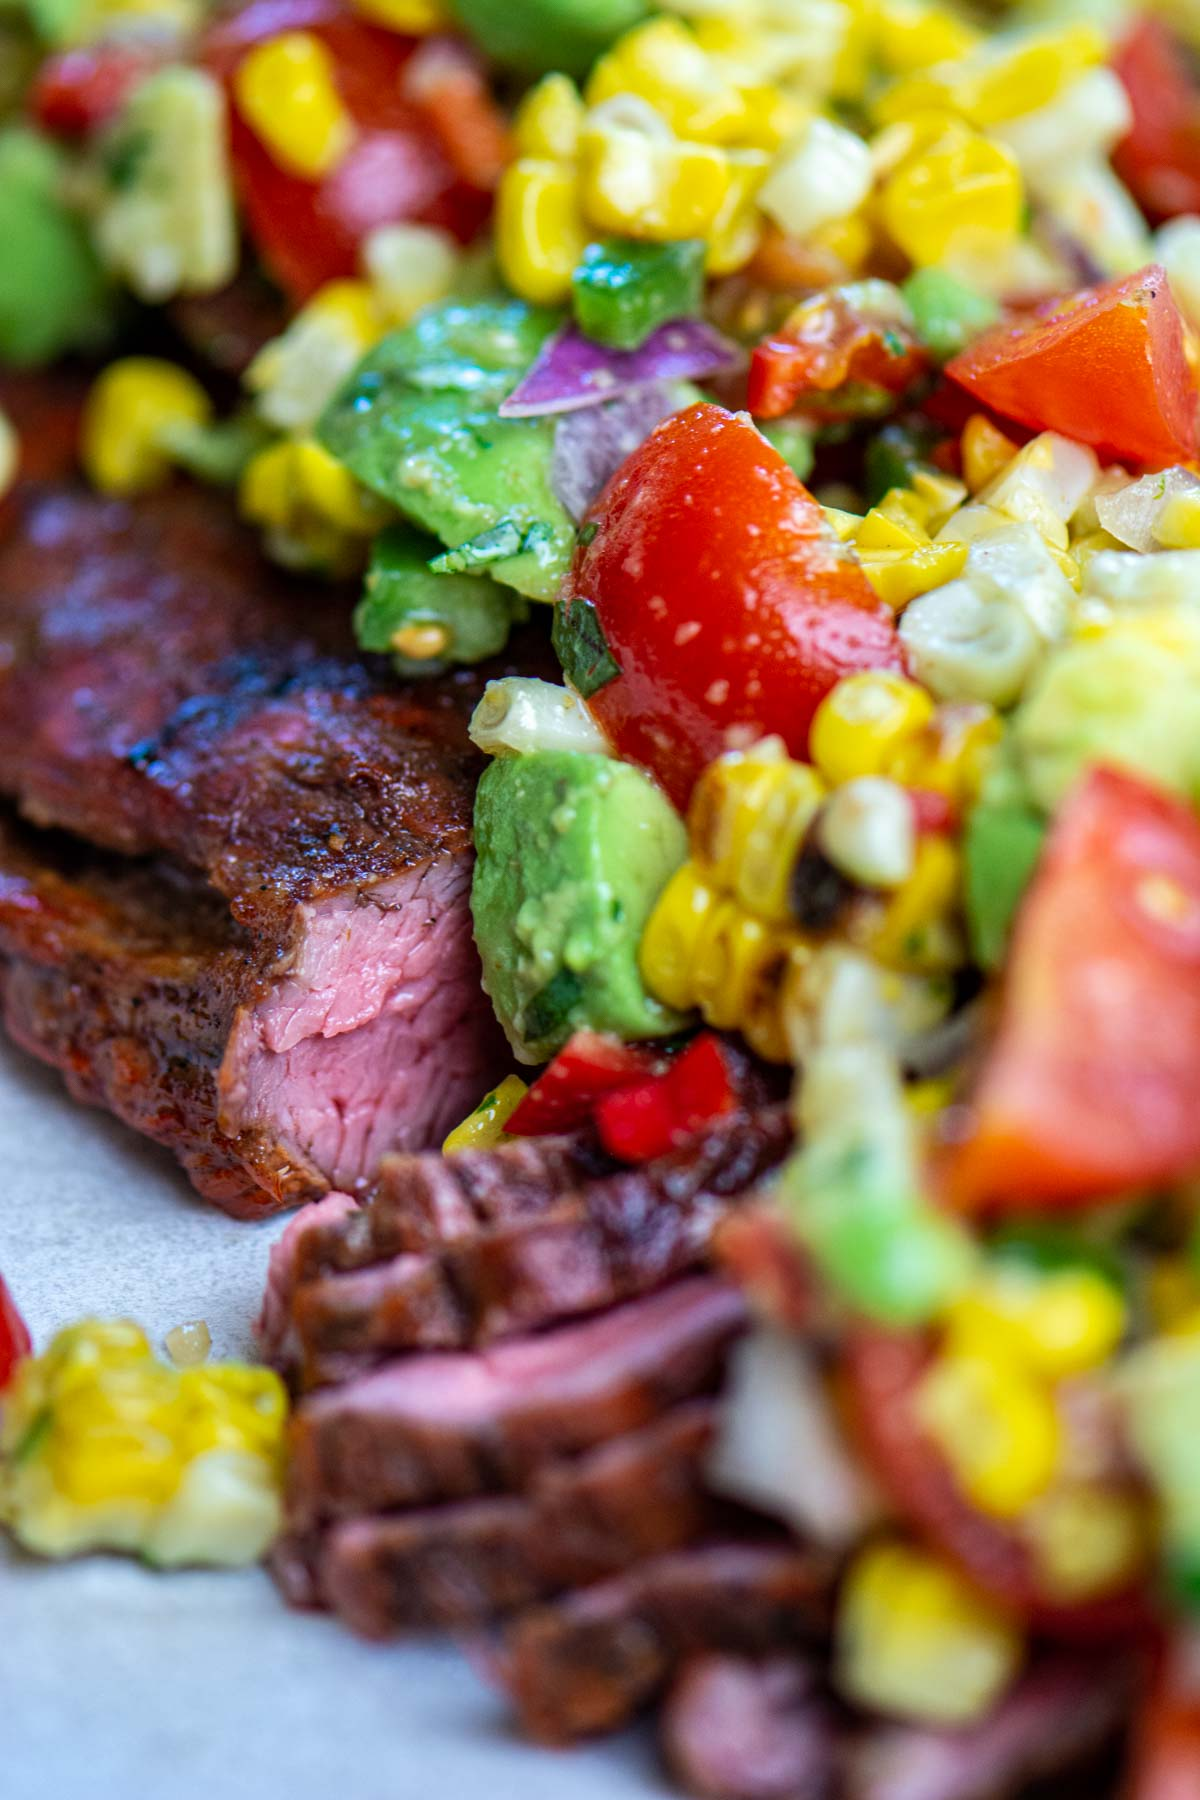 grilled and sliced flank steak topped with freshly chopped veggies.